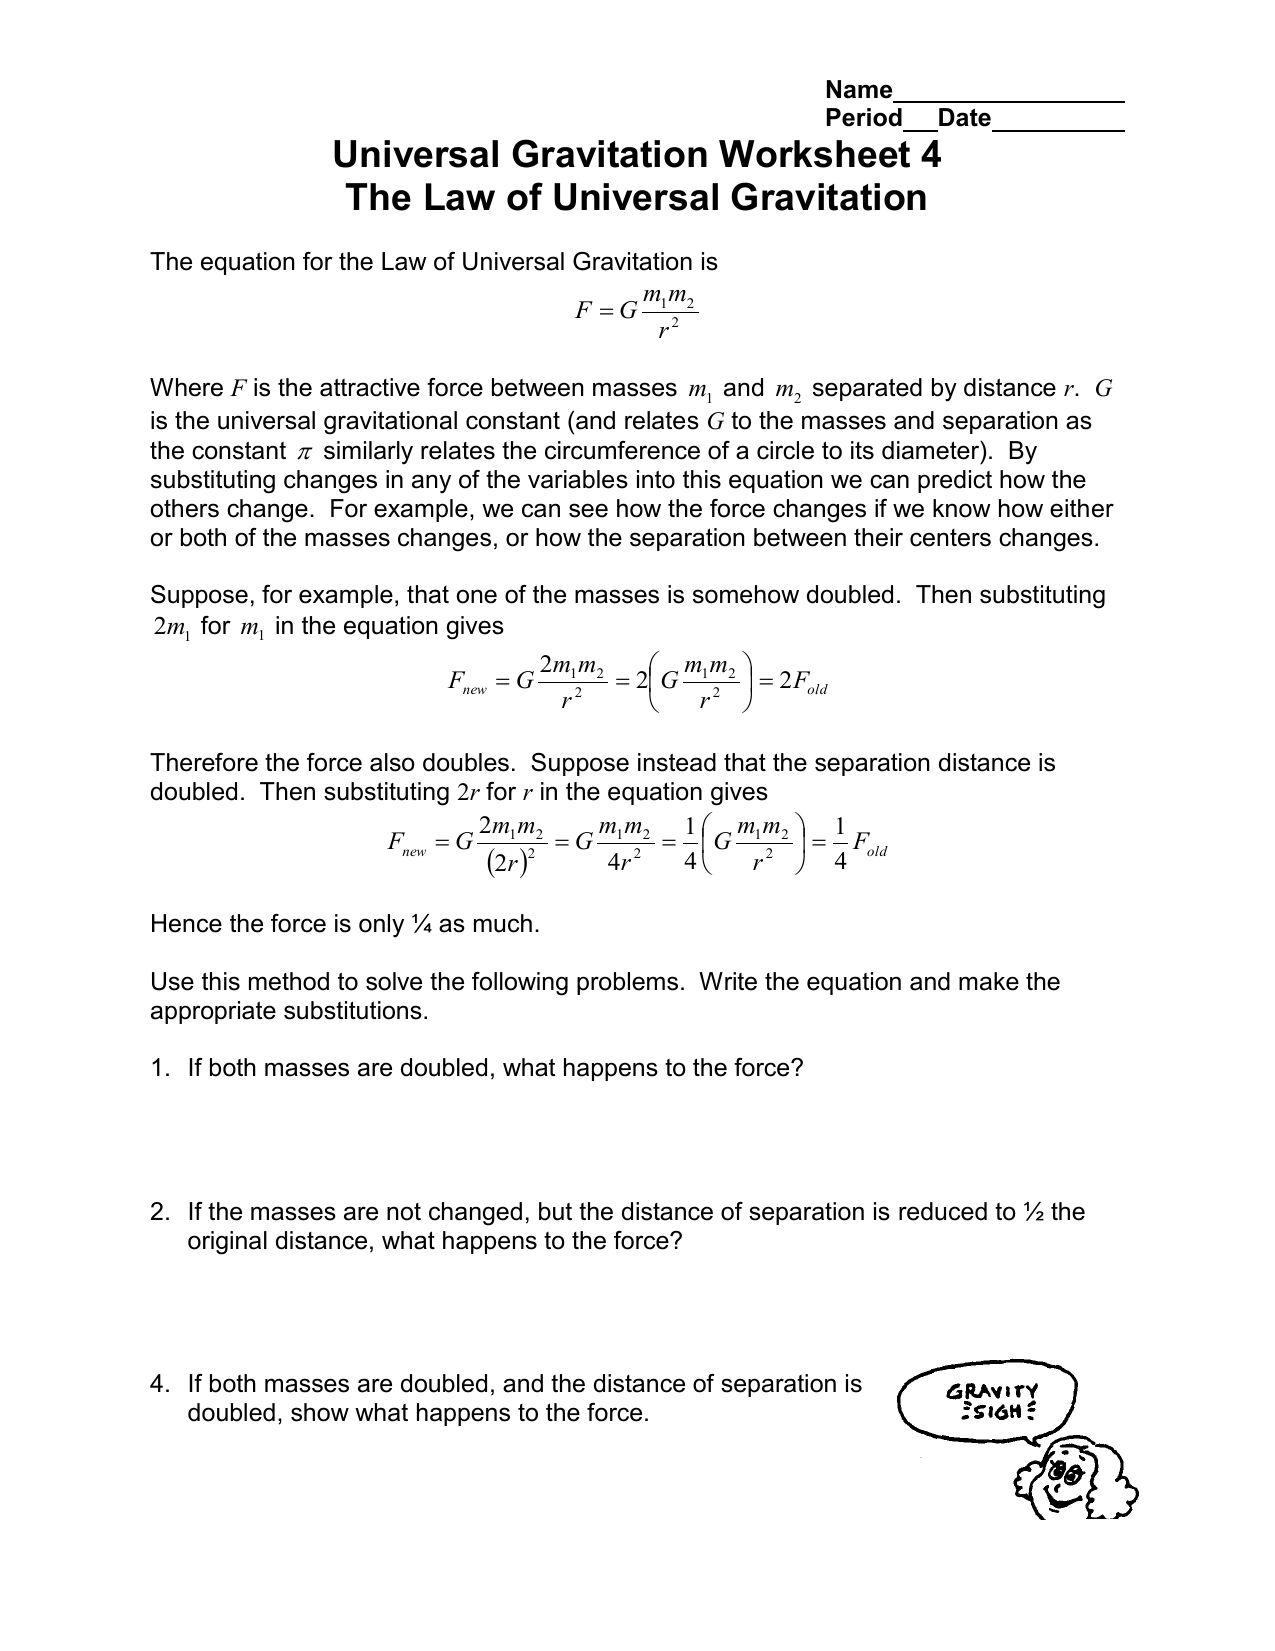 Universal Gravitation Worksheet 4 The Law of Universal ...